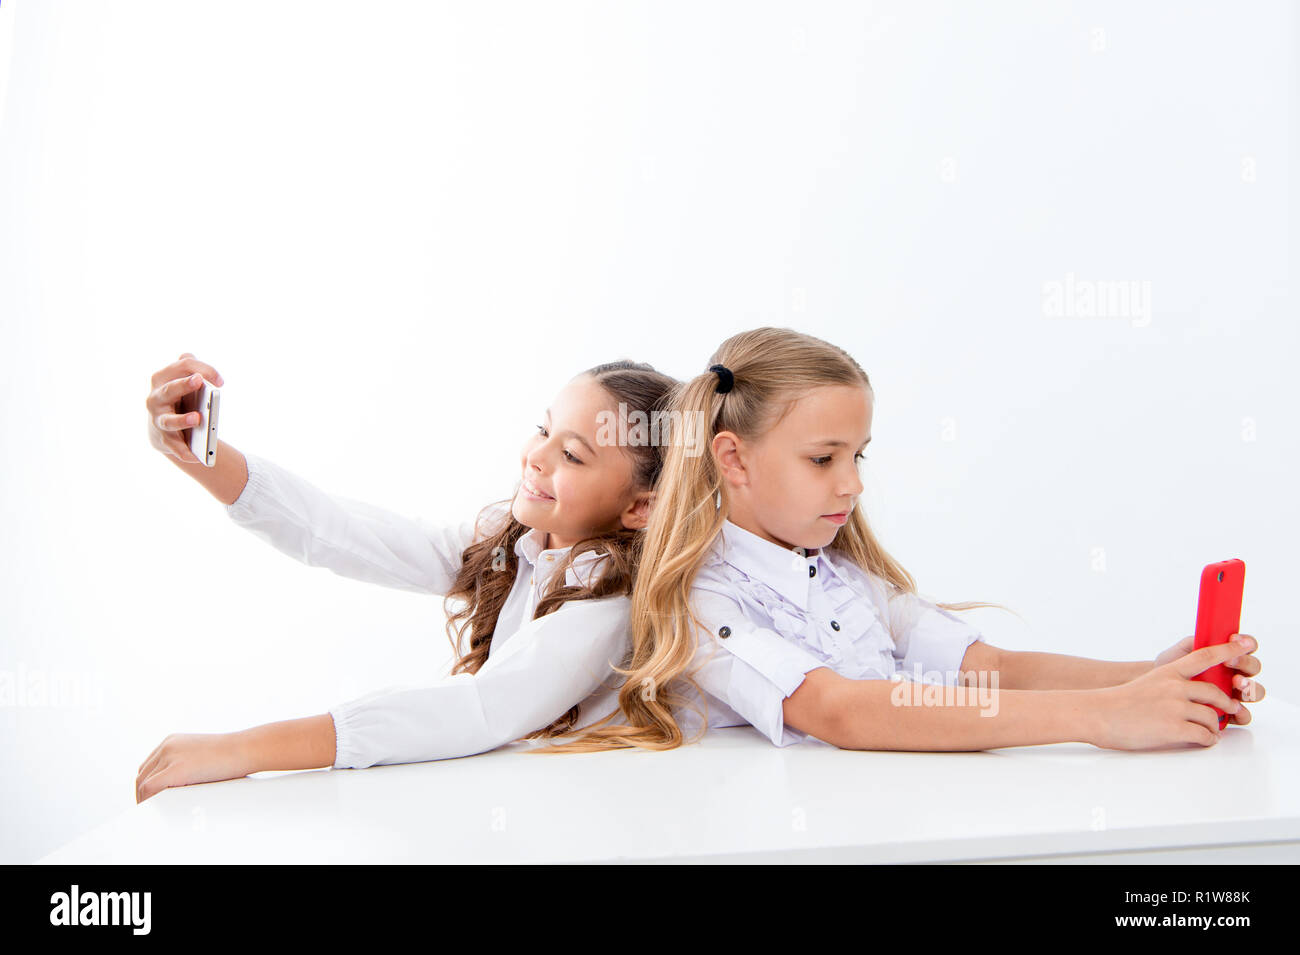 mobile phone dependence and selfie. small kids make selfie on phone at school isolated on white, copy space. students life with mobile phone dependence. - Stock Image